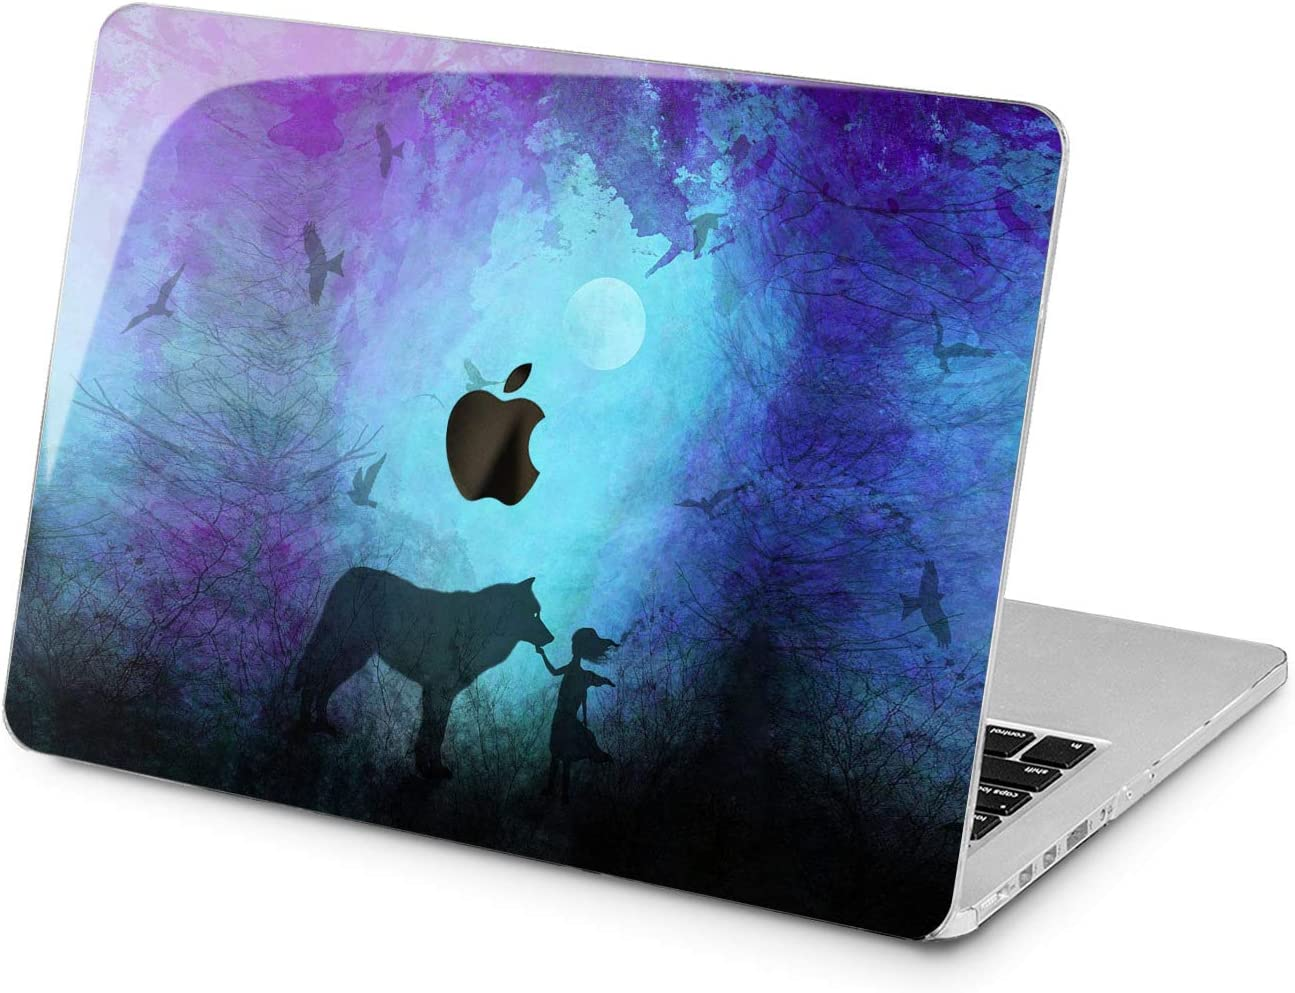 "Cavka Hard Shell Case for Apple MacBook Pro 13"" 2019 15"" 2018 Air 13"" 2020 Retina 2015 Mac 11"" Mac 12"" Wolf Unique Laptop Cute Animal Blue Print Design Protective Watercolor Plastic Painted Cover"